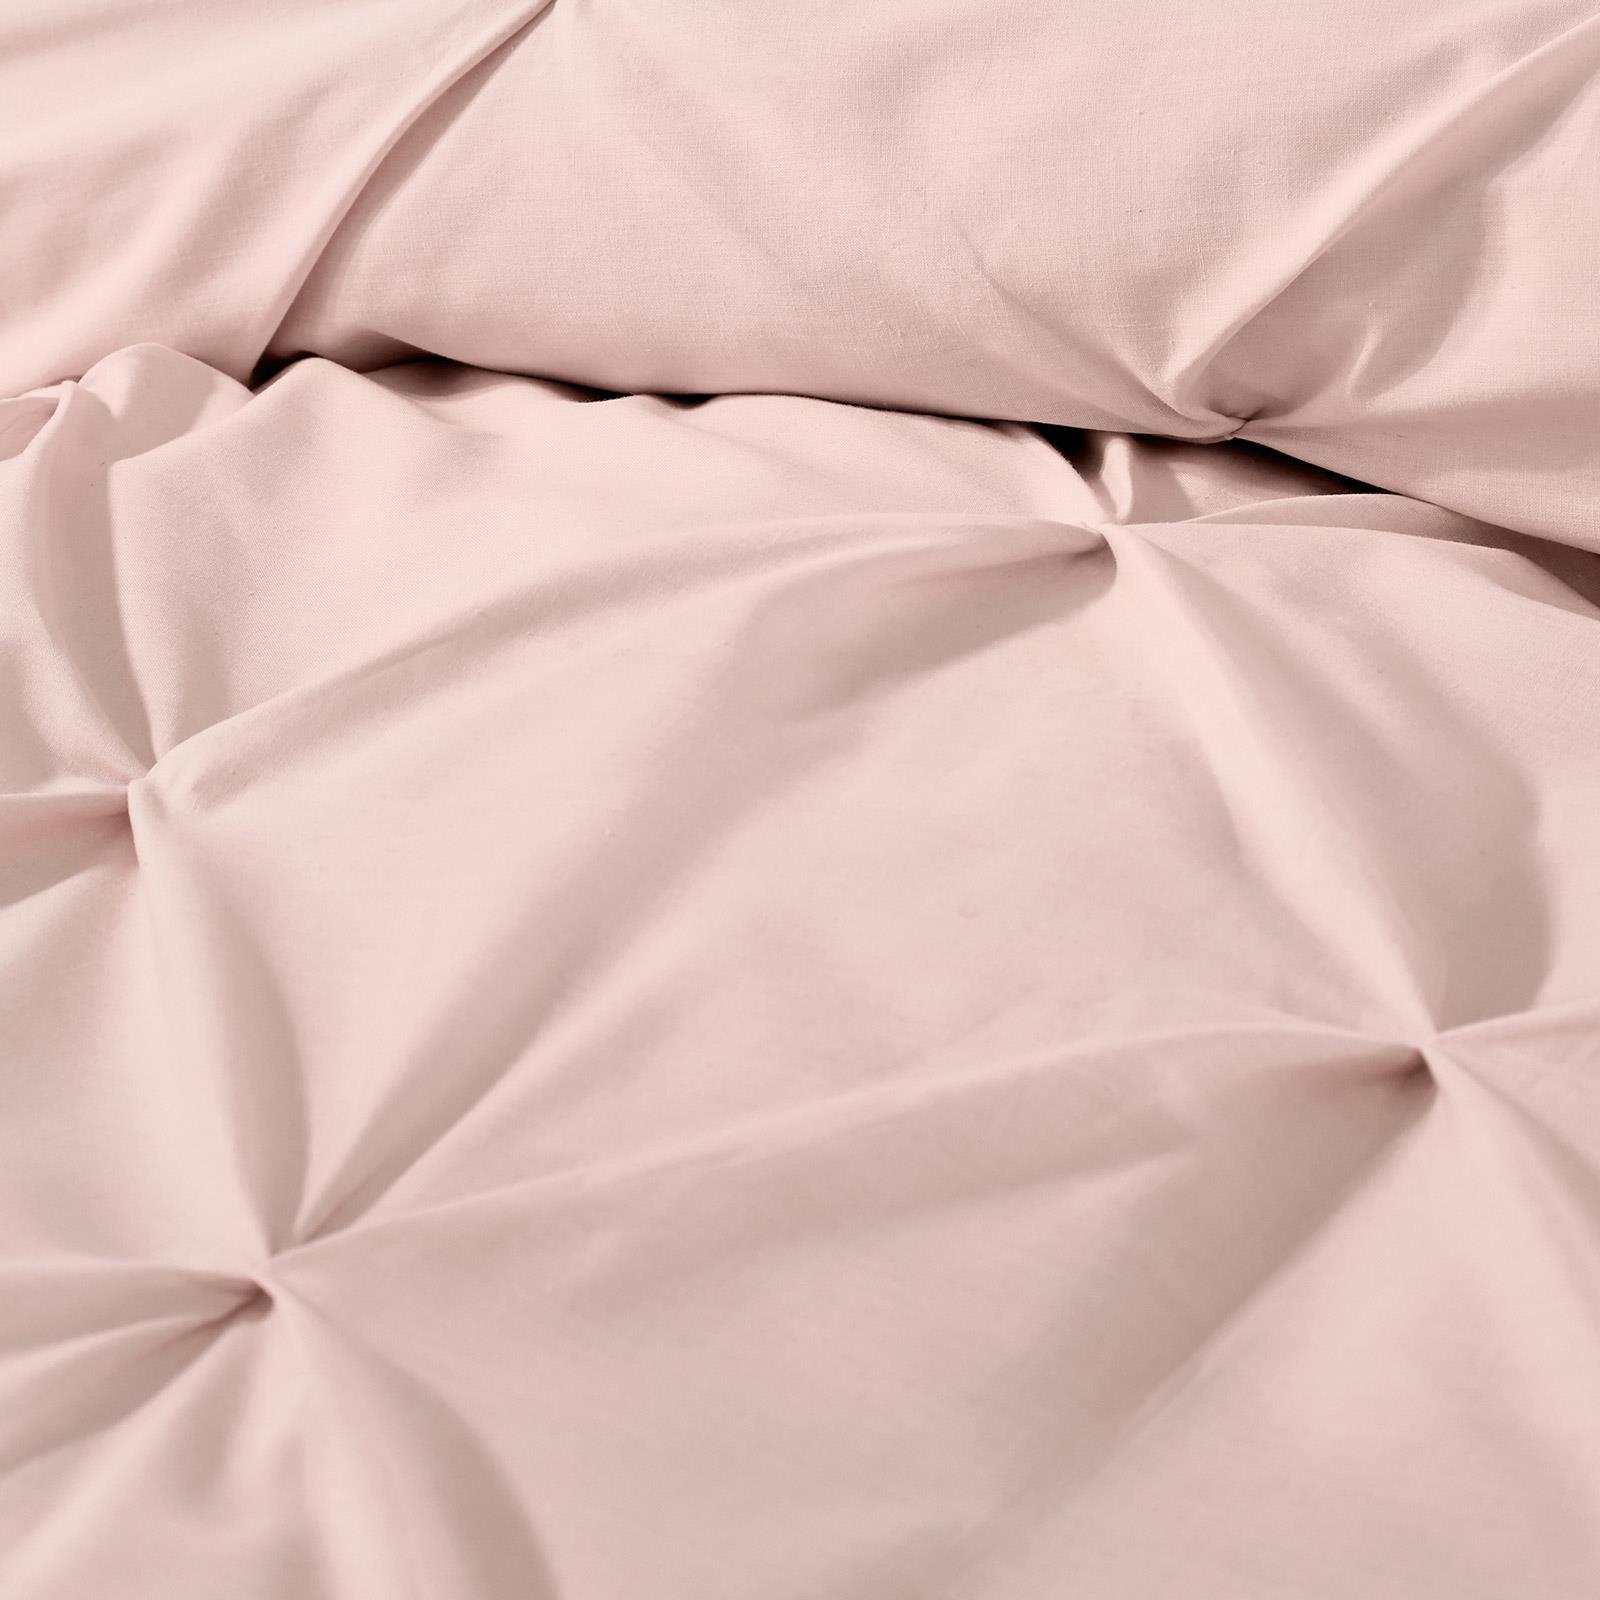 Blush-Duvet-Covers-Ruched-Pin-Tuck-Stitched-Plain-Pink-Quilt-Cover-Bedding-Sets thumbnail 21